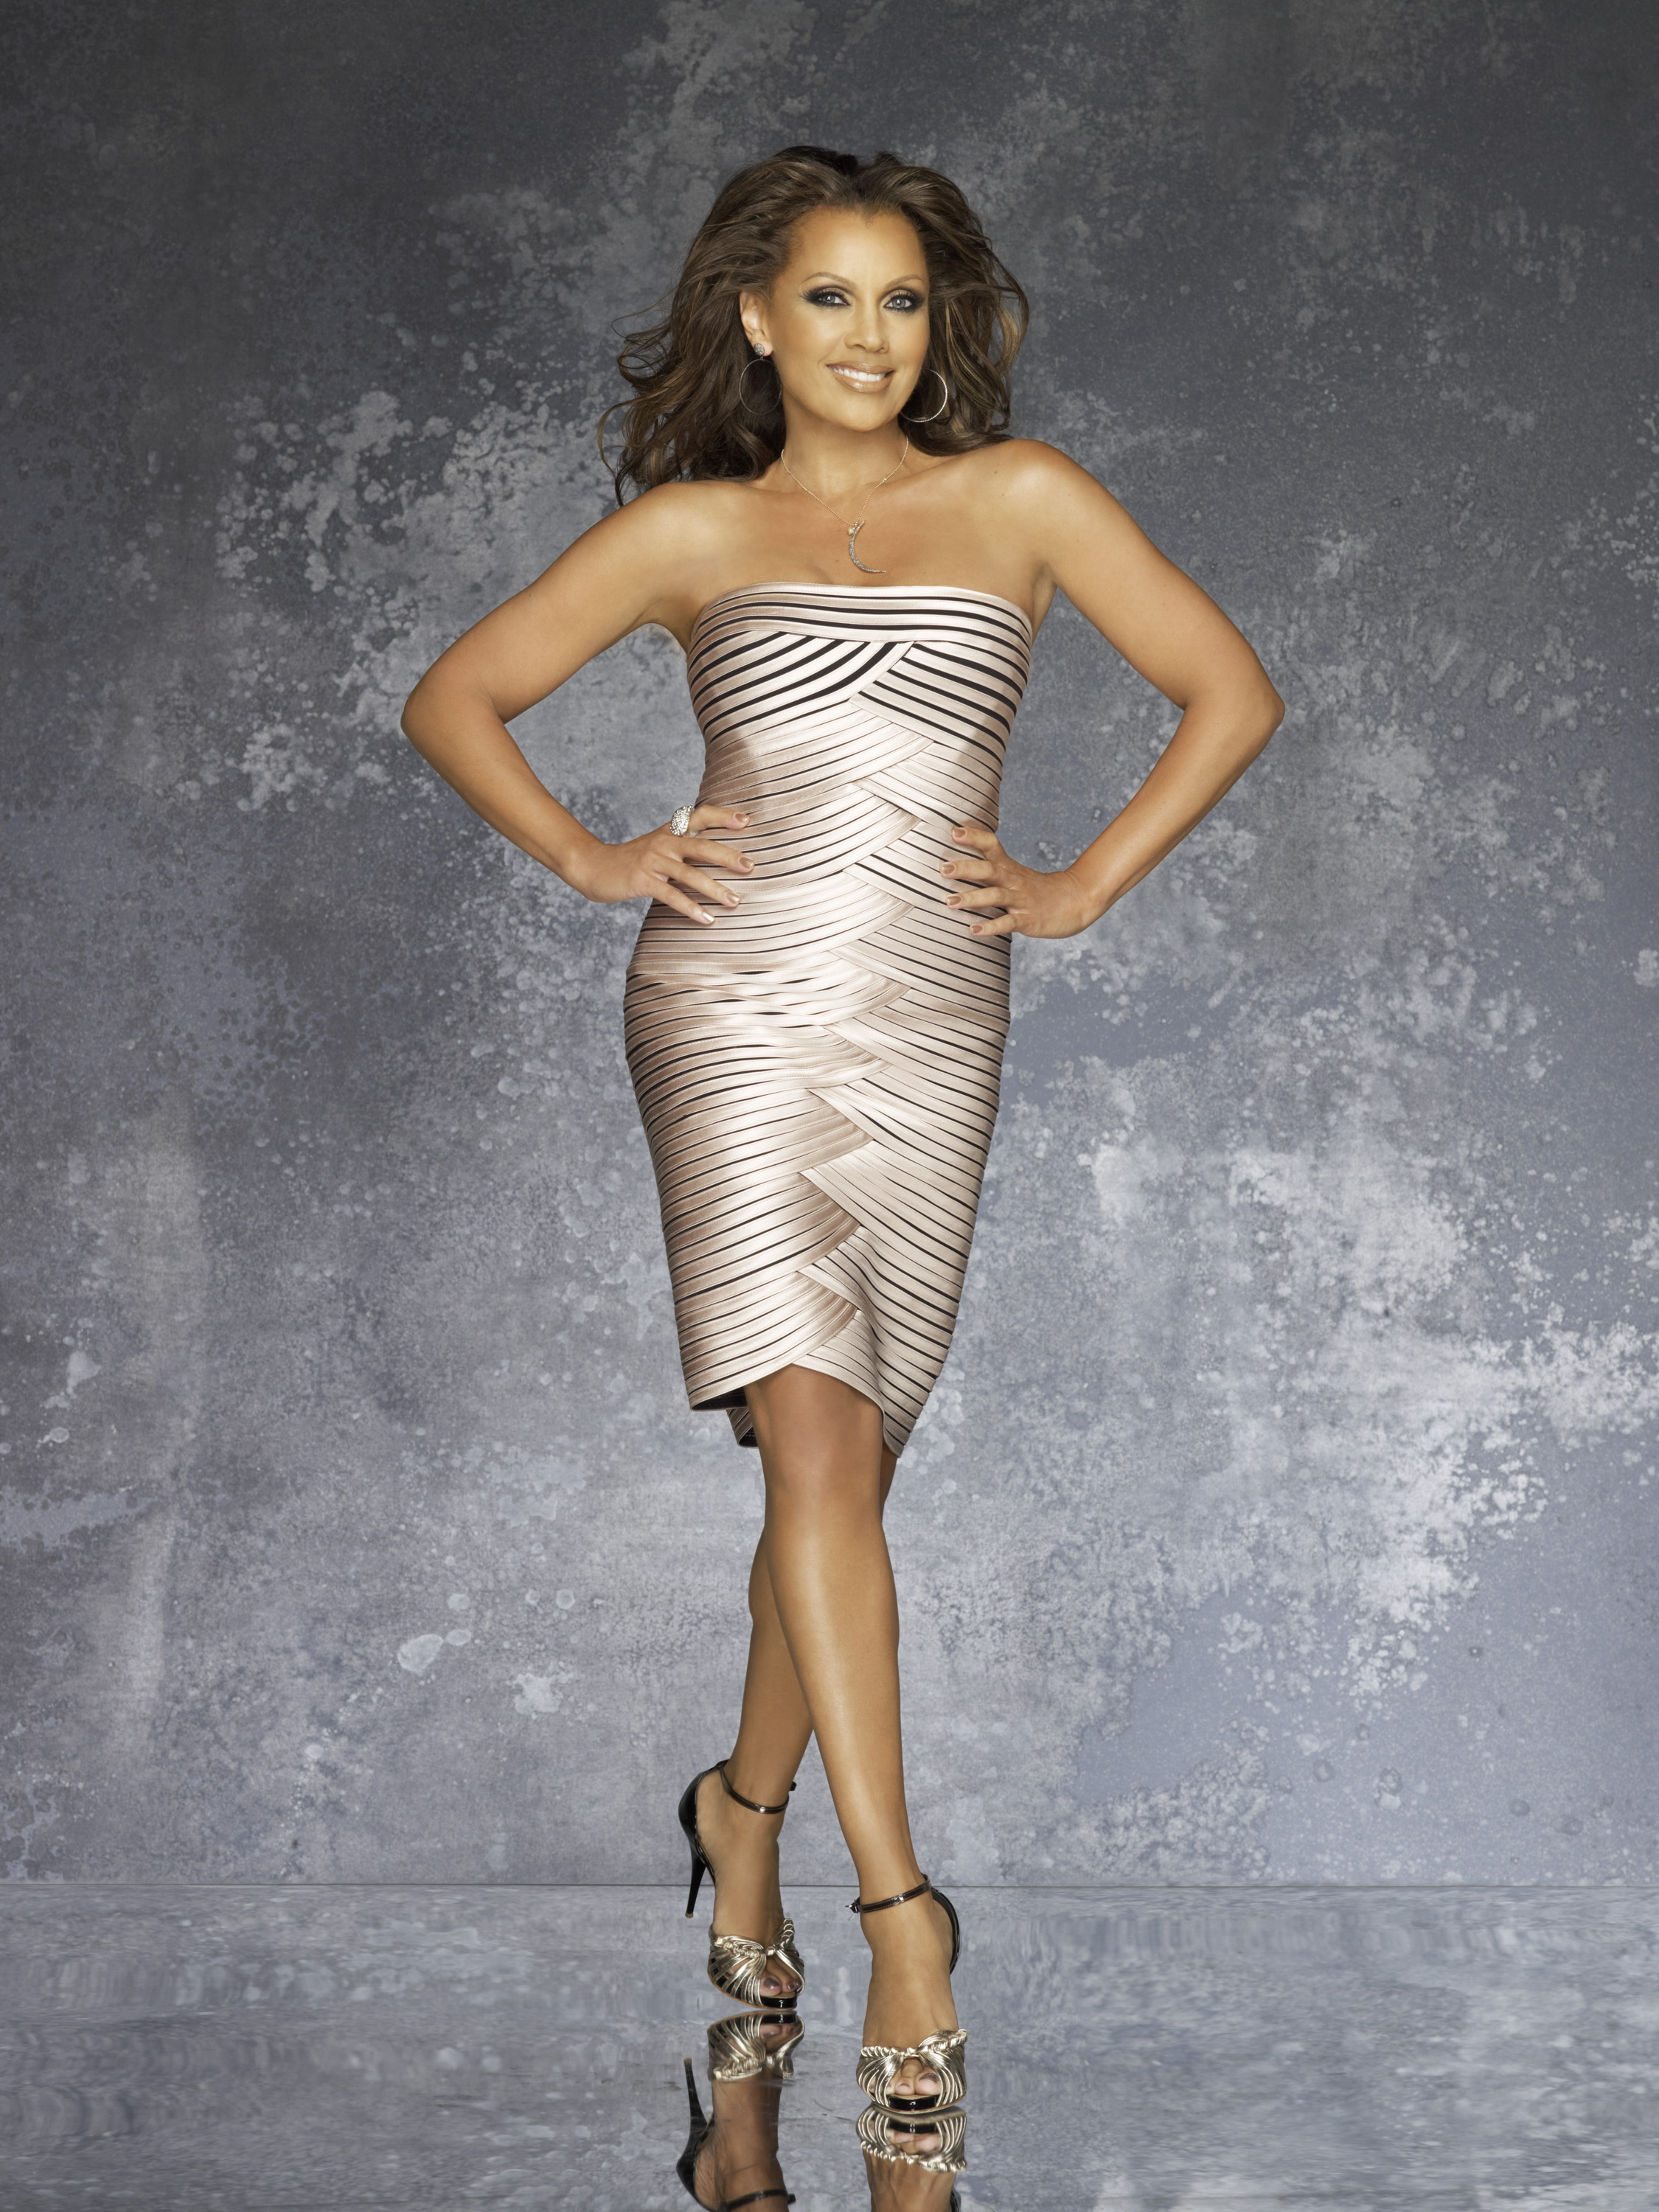 http://seriesaddict.fr/images/galerie/Desperate-Housewives/promoSaison-8/Renee-Desperate-Housewives-Promo-Saison-8-4.jpg